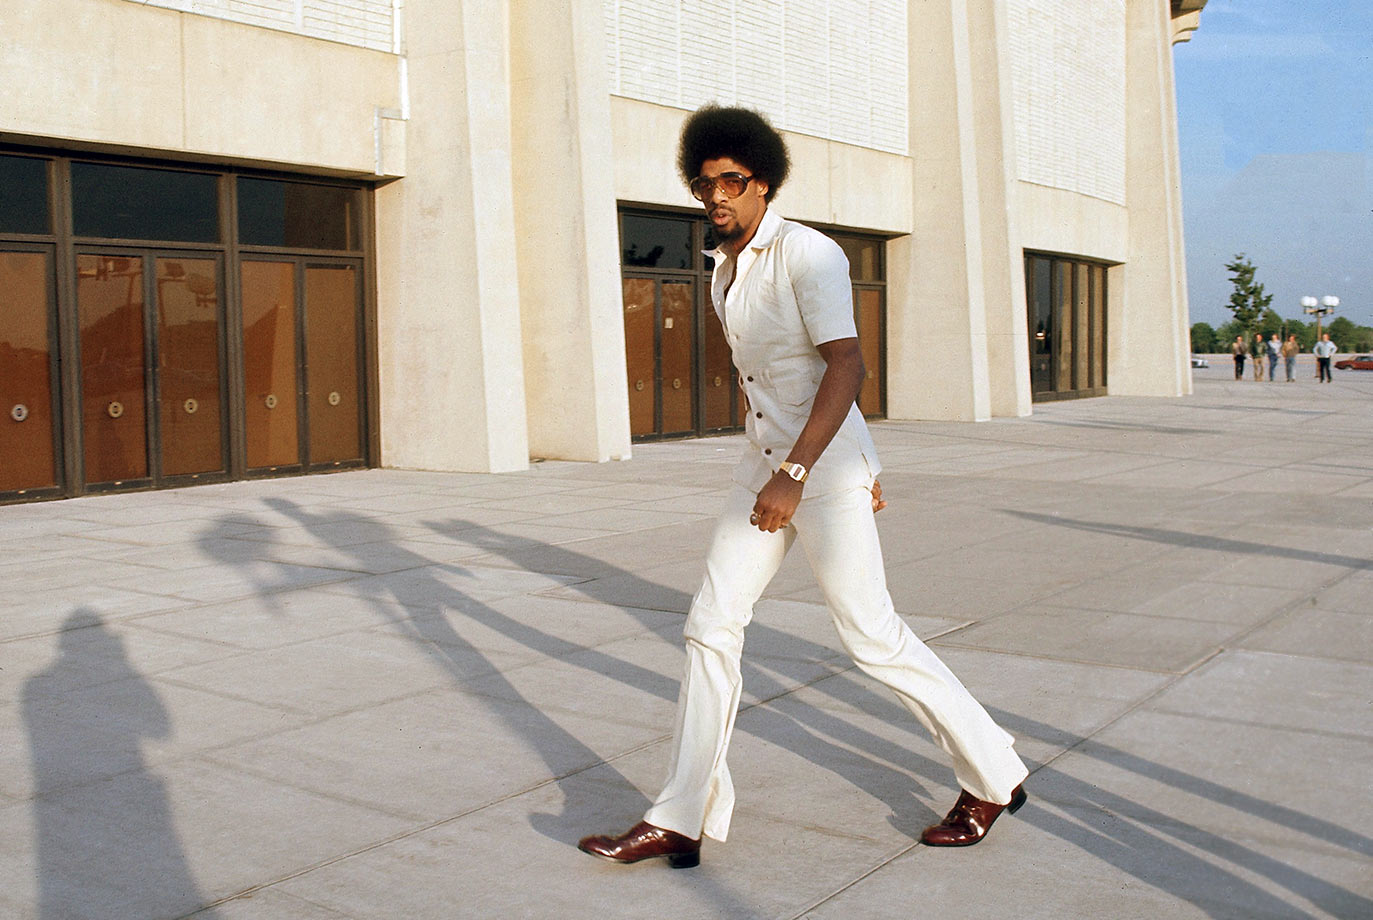 Dr. J shows off his '70s style as he enters the Nassau Coliseum before the Nets' Game 4 of the ABA Championship against the Denver Nuggets.